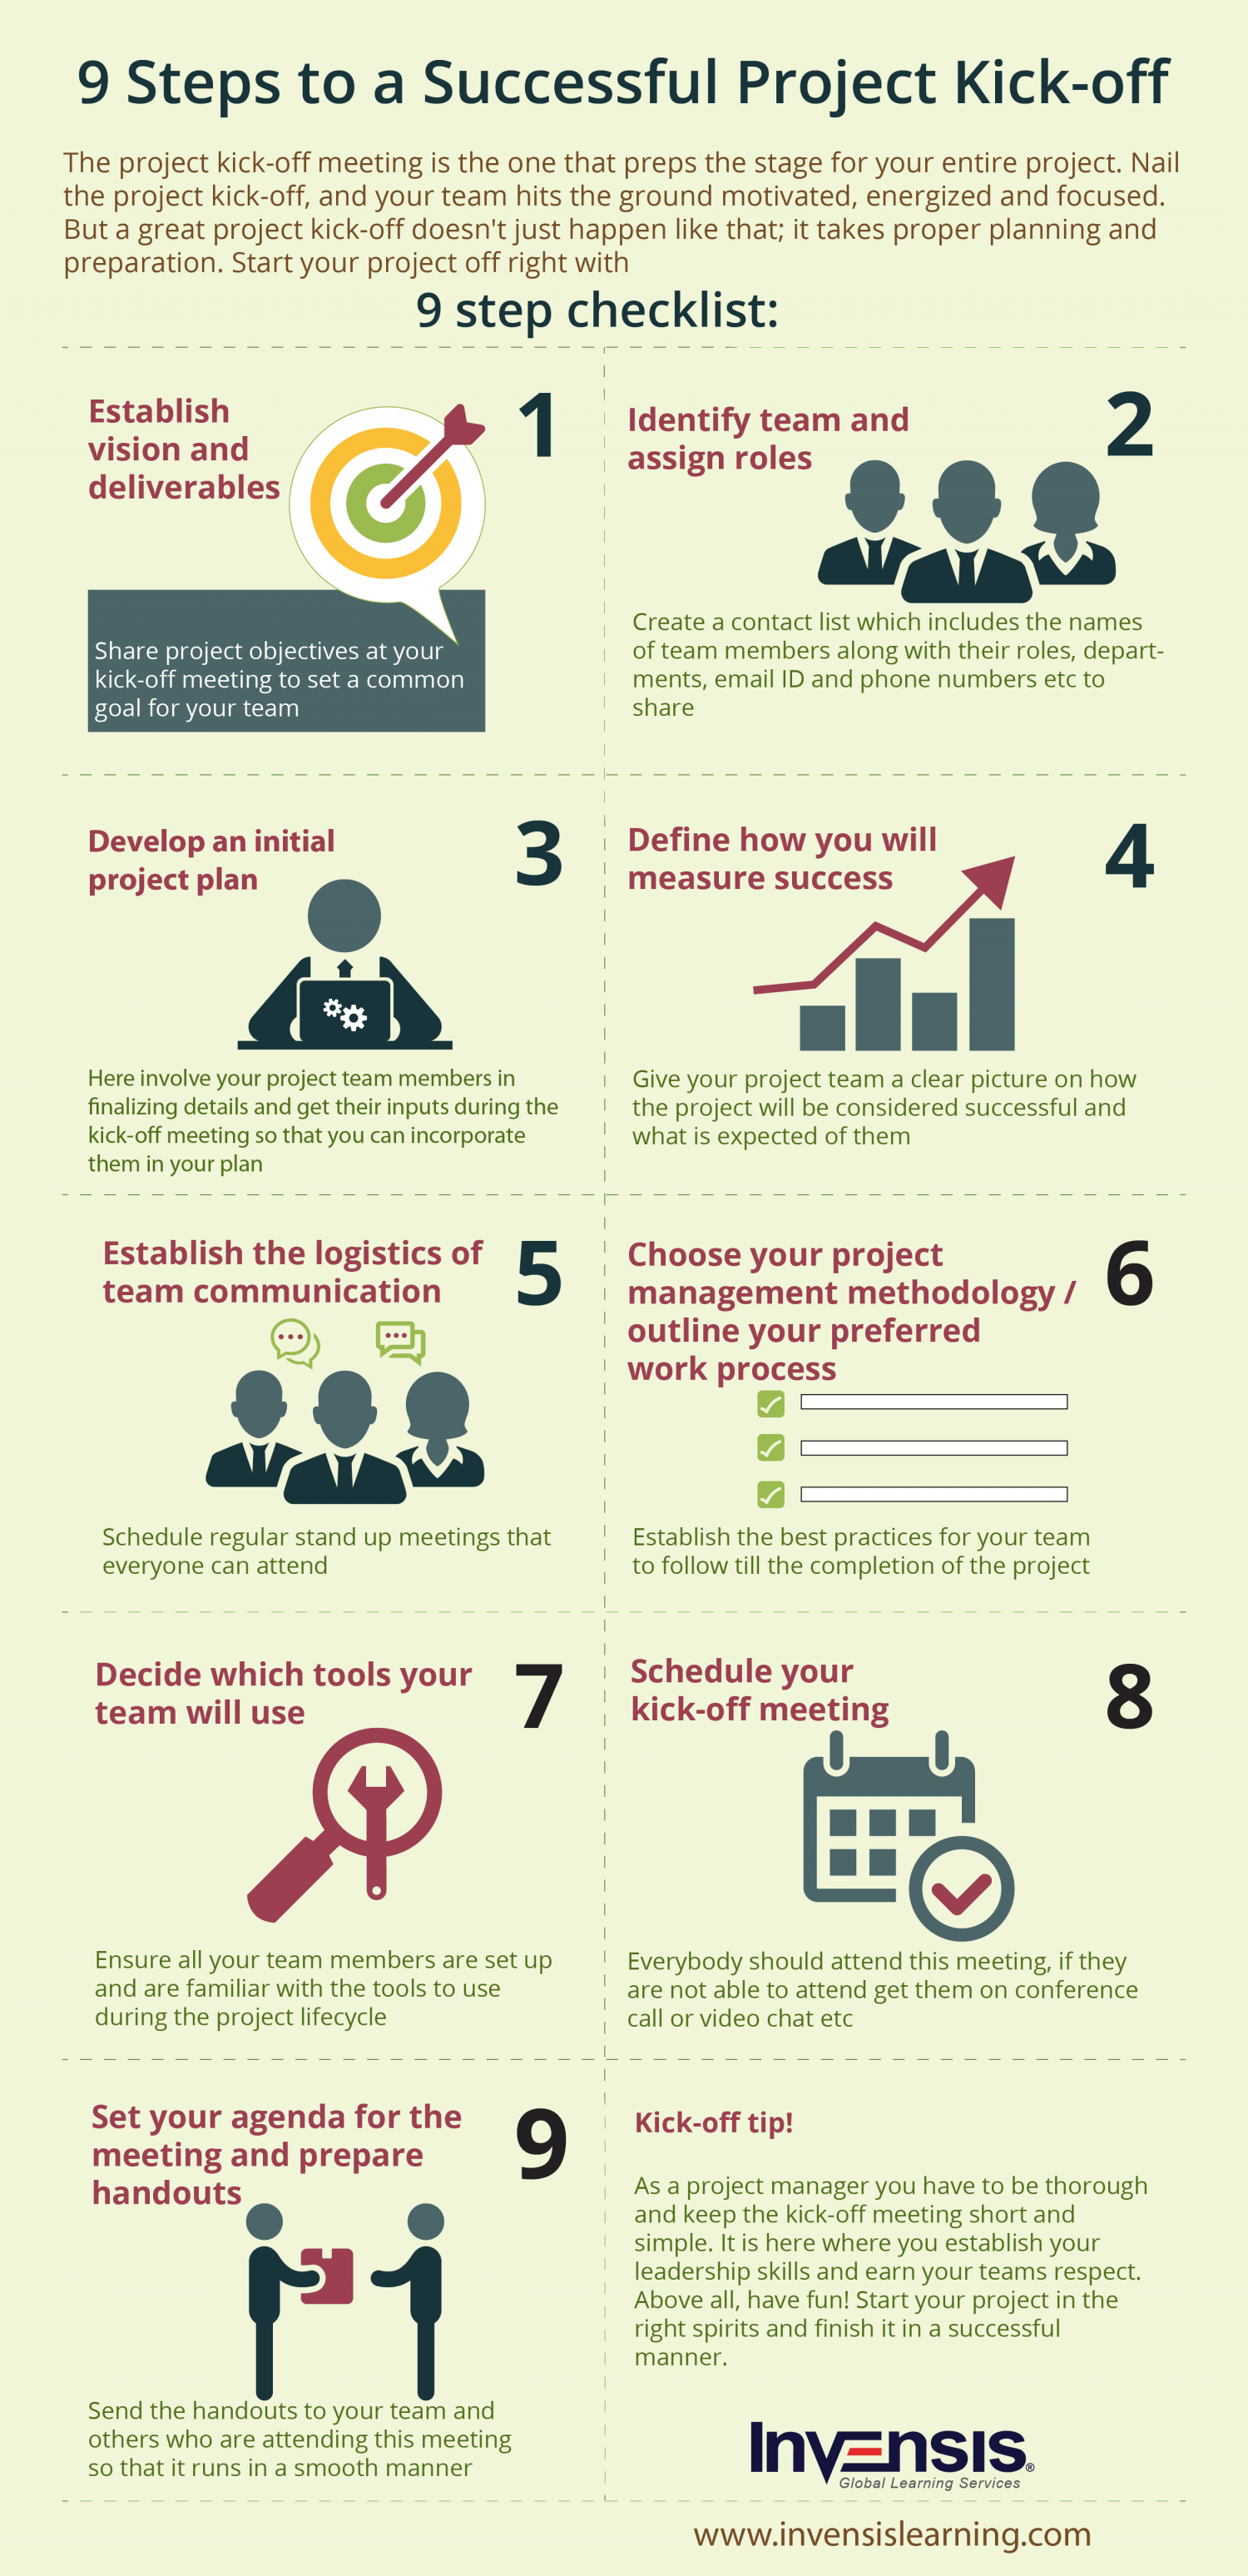 9 Steps to a Successful Project Kick - off Infographic